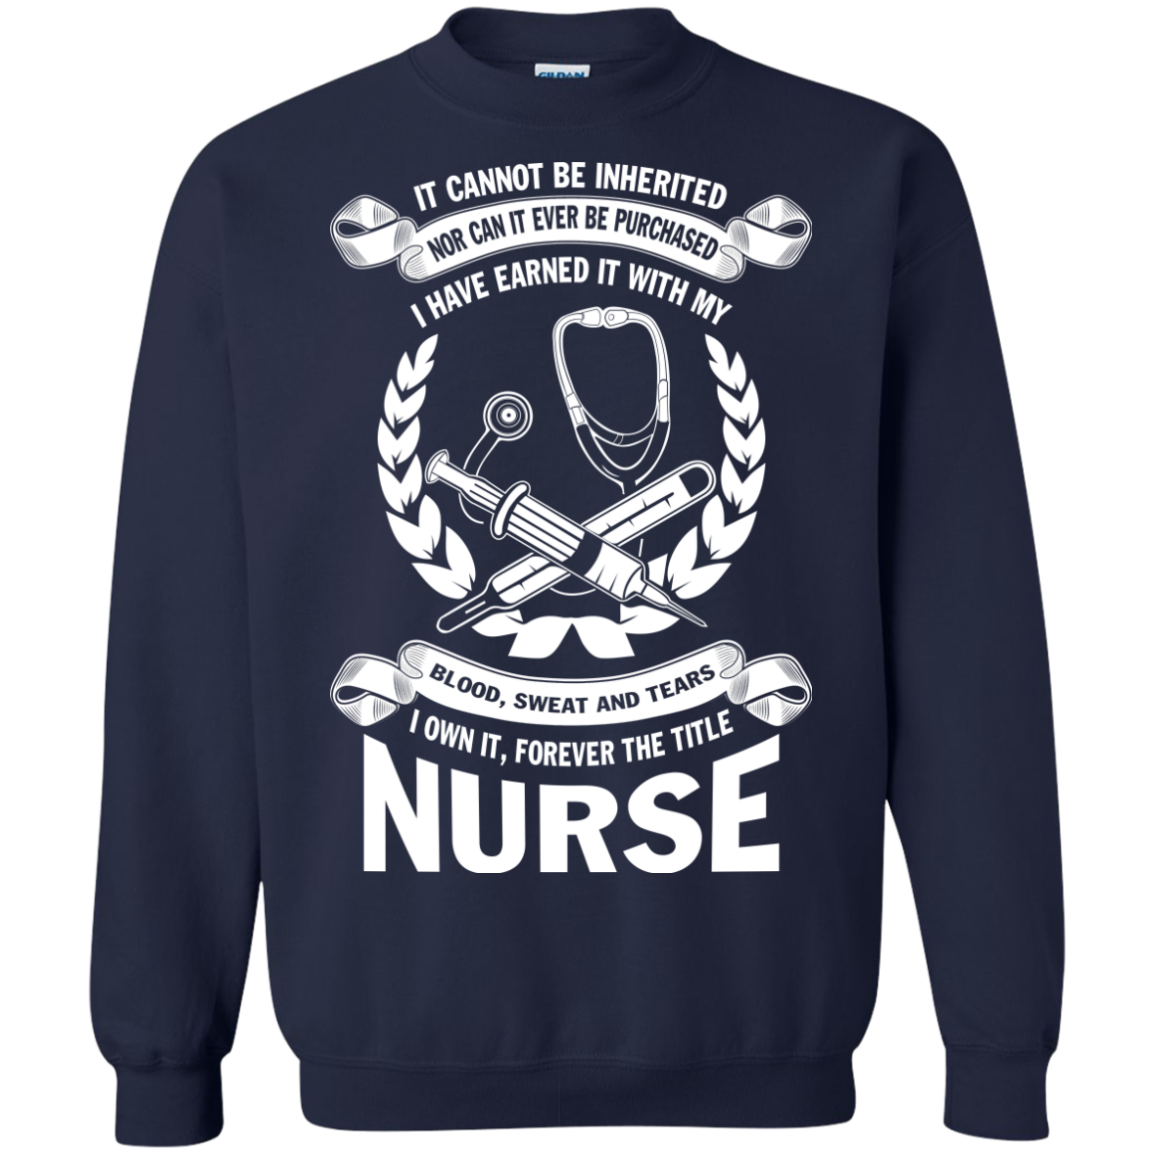 It Cannot Be Inherited Nor Can It Ever Be Purchased I Have Earned It With My Blood Sweat And Tears I Own It Forever The Title Nurse - The Sun Cat